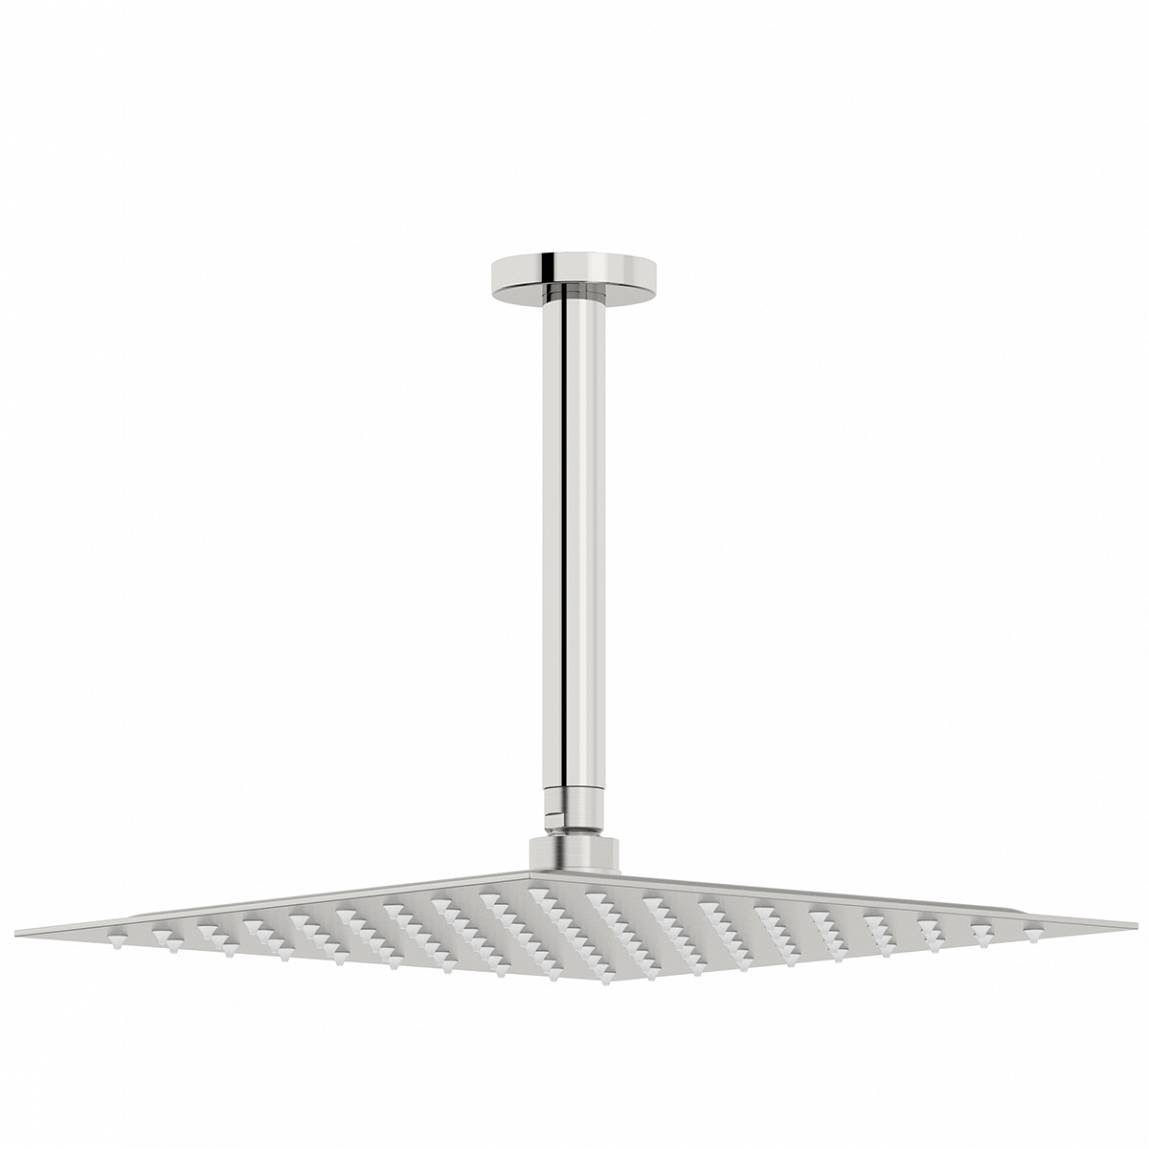 Image of Incus 300mm Shower Head & Round Ceiling Arm